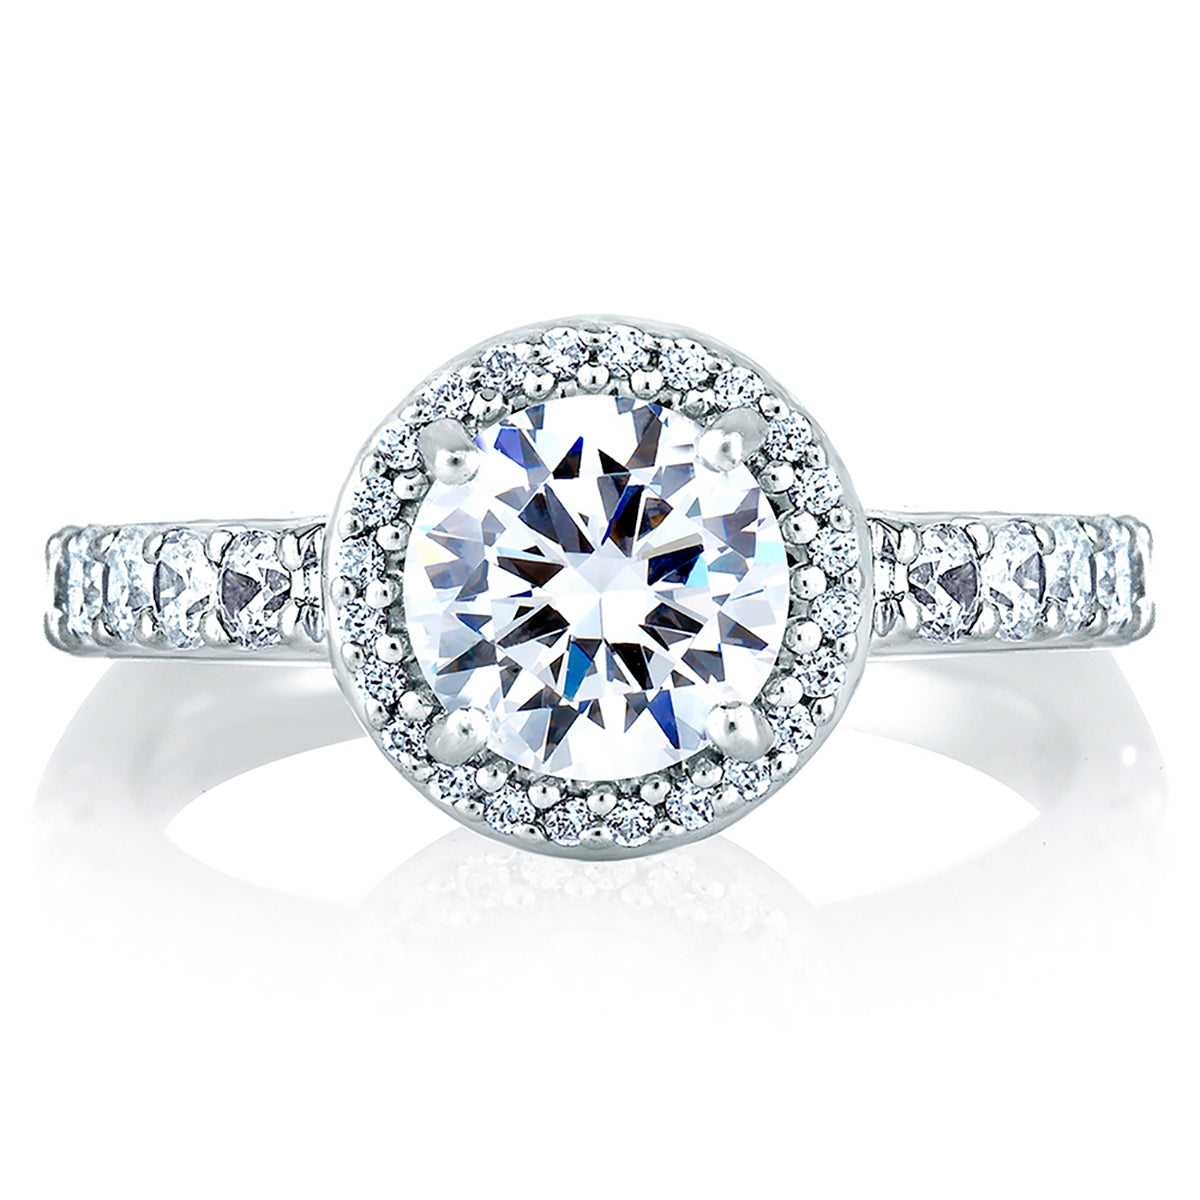 A.Jaffe Halo Set Shared Prong Engagement Ring MES168/62